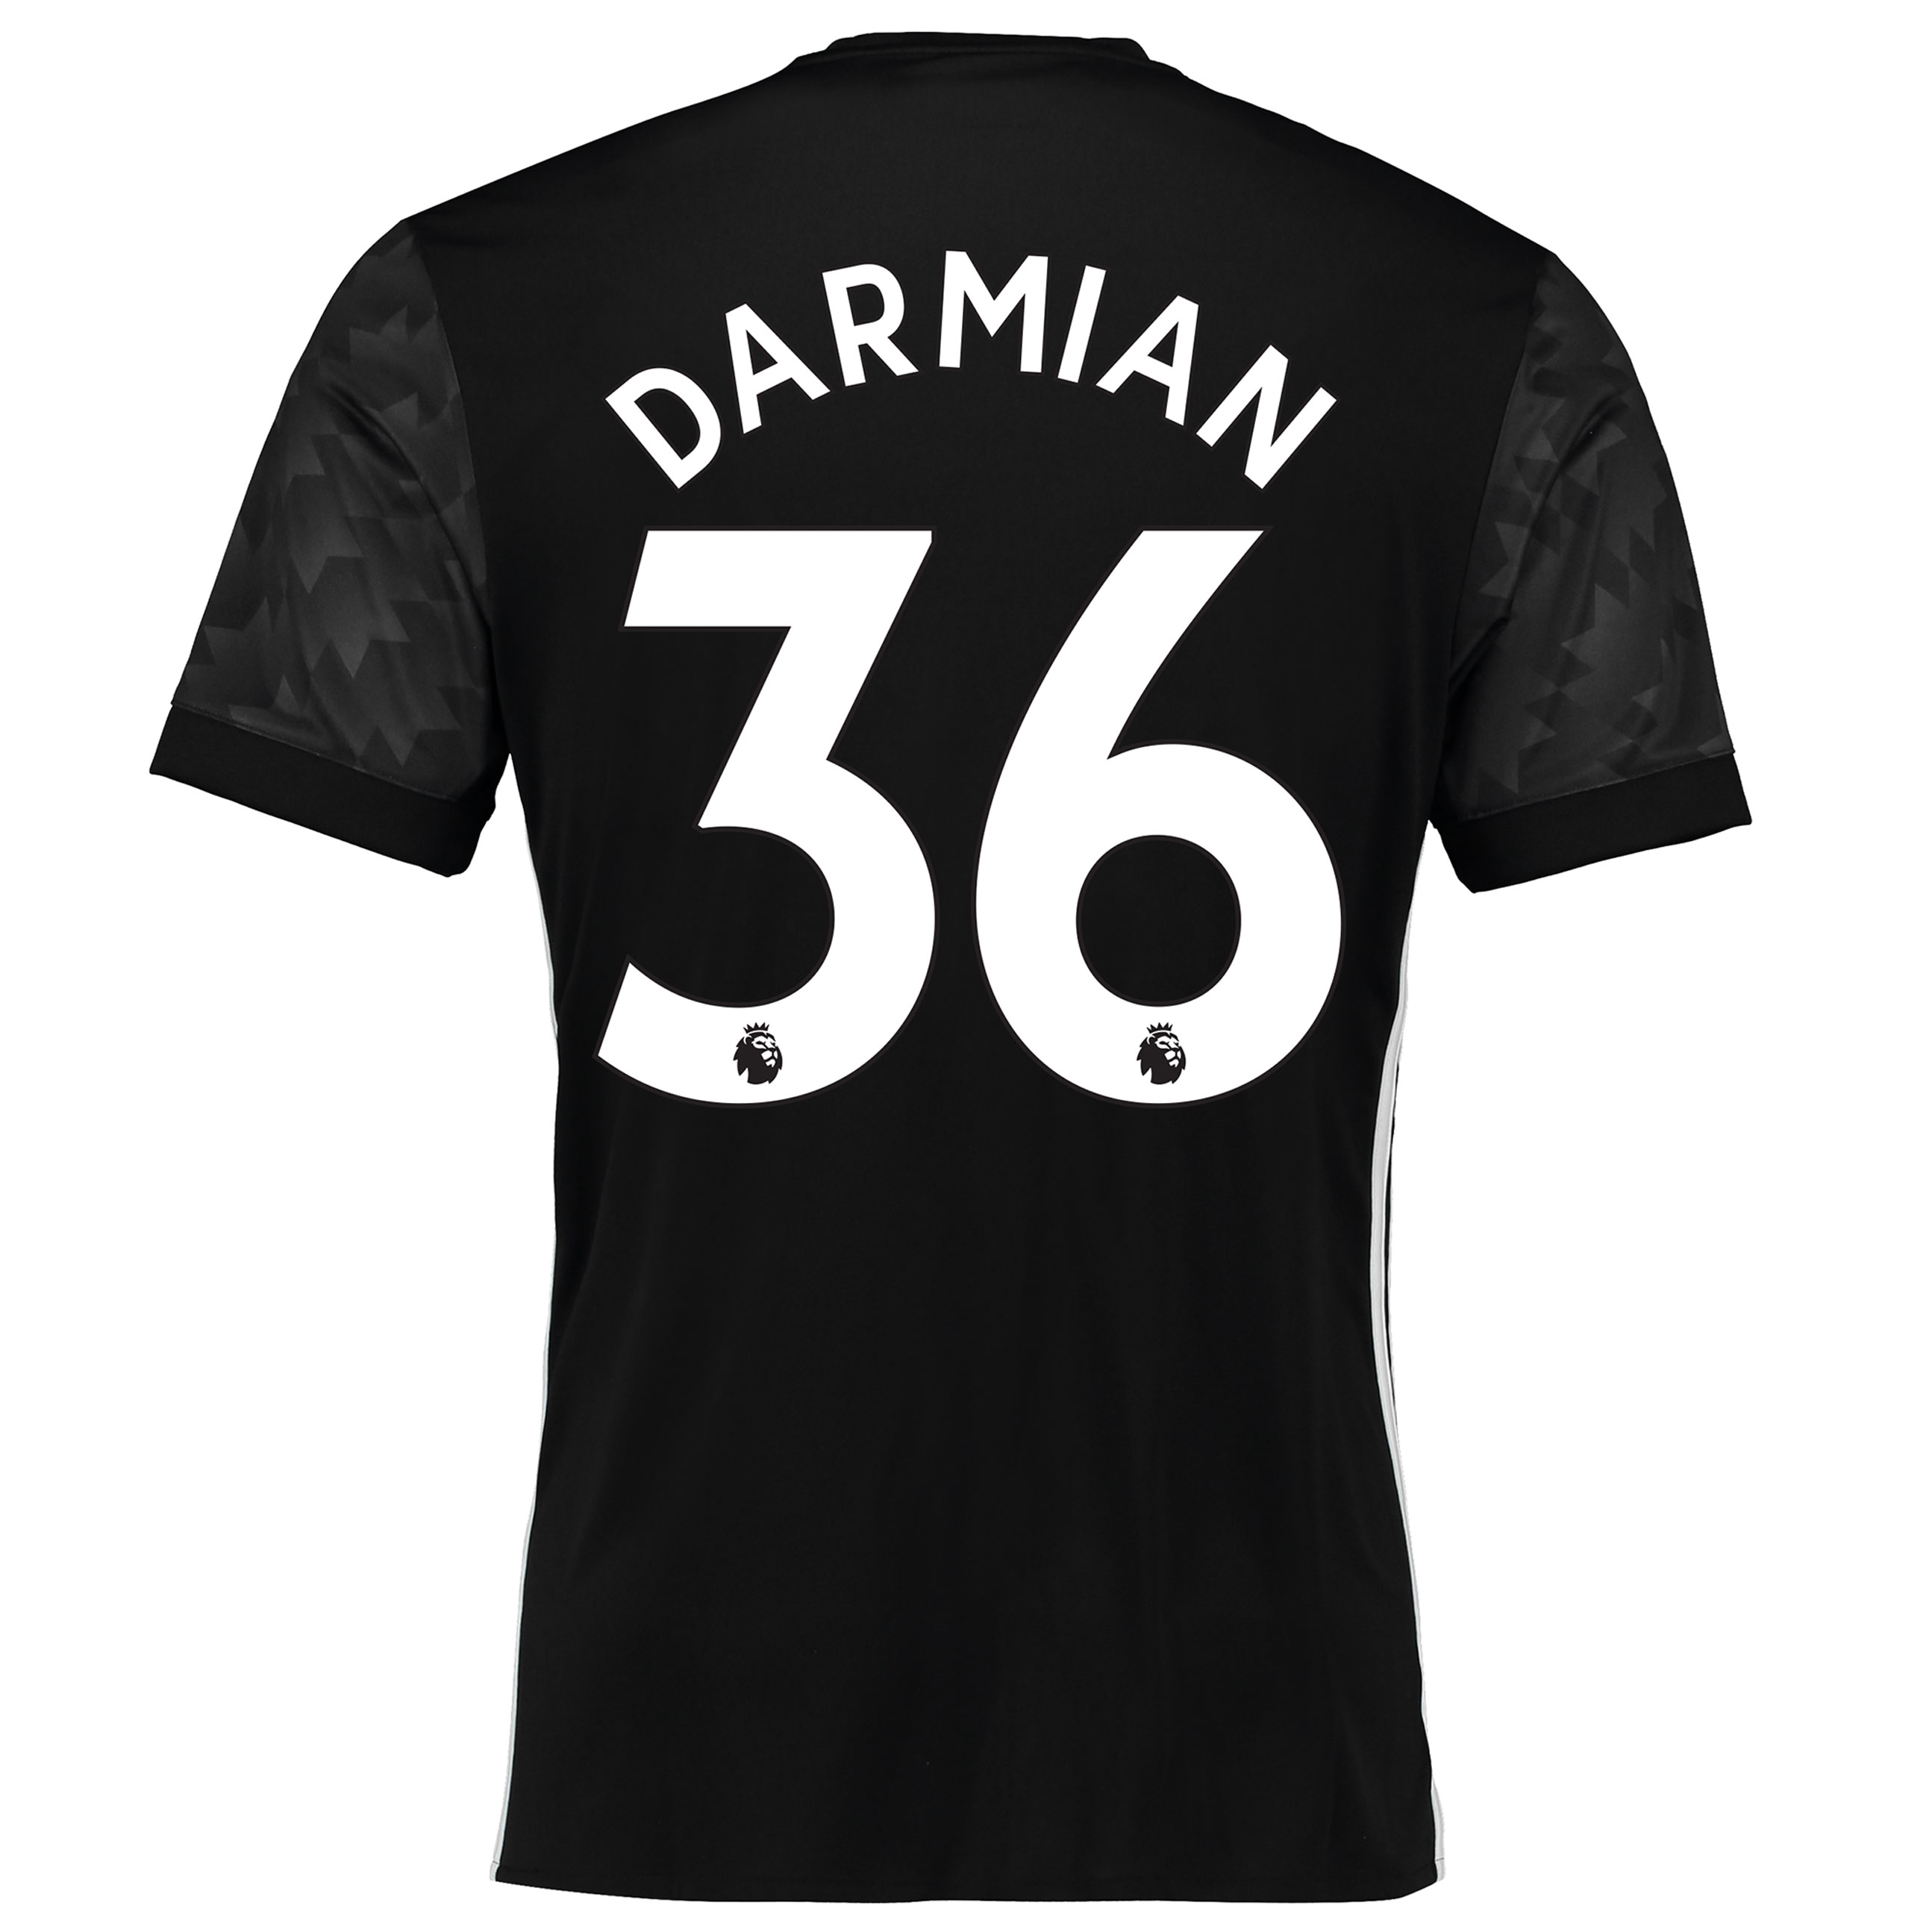 Manchester United Away Shirt 2017-18 with Darmian 36 printing